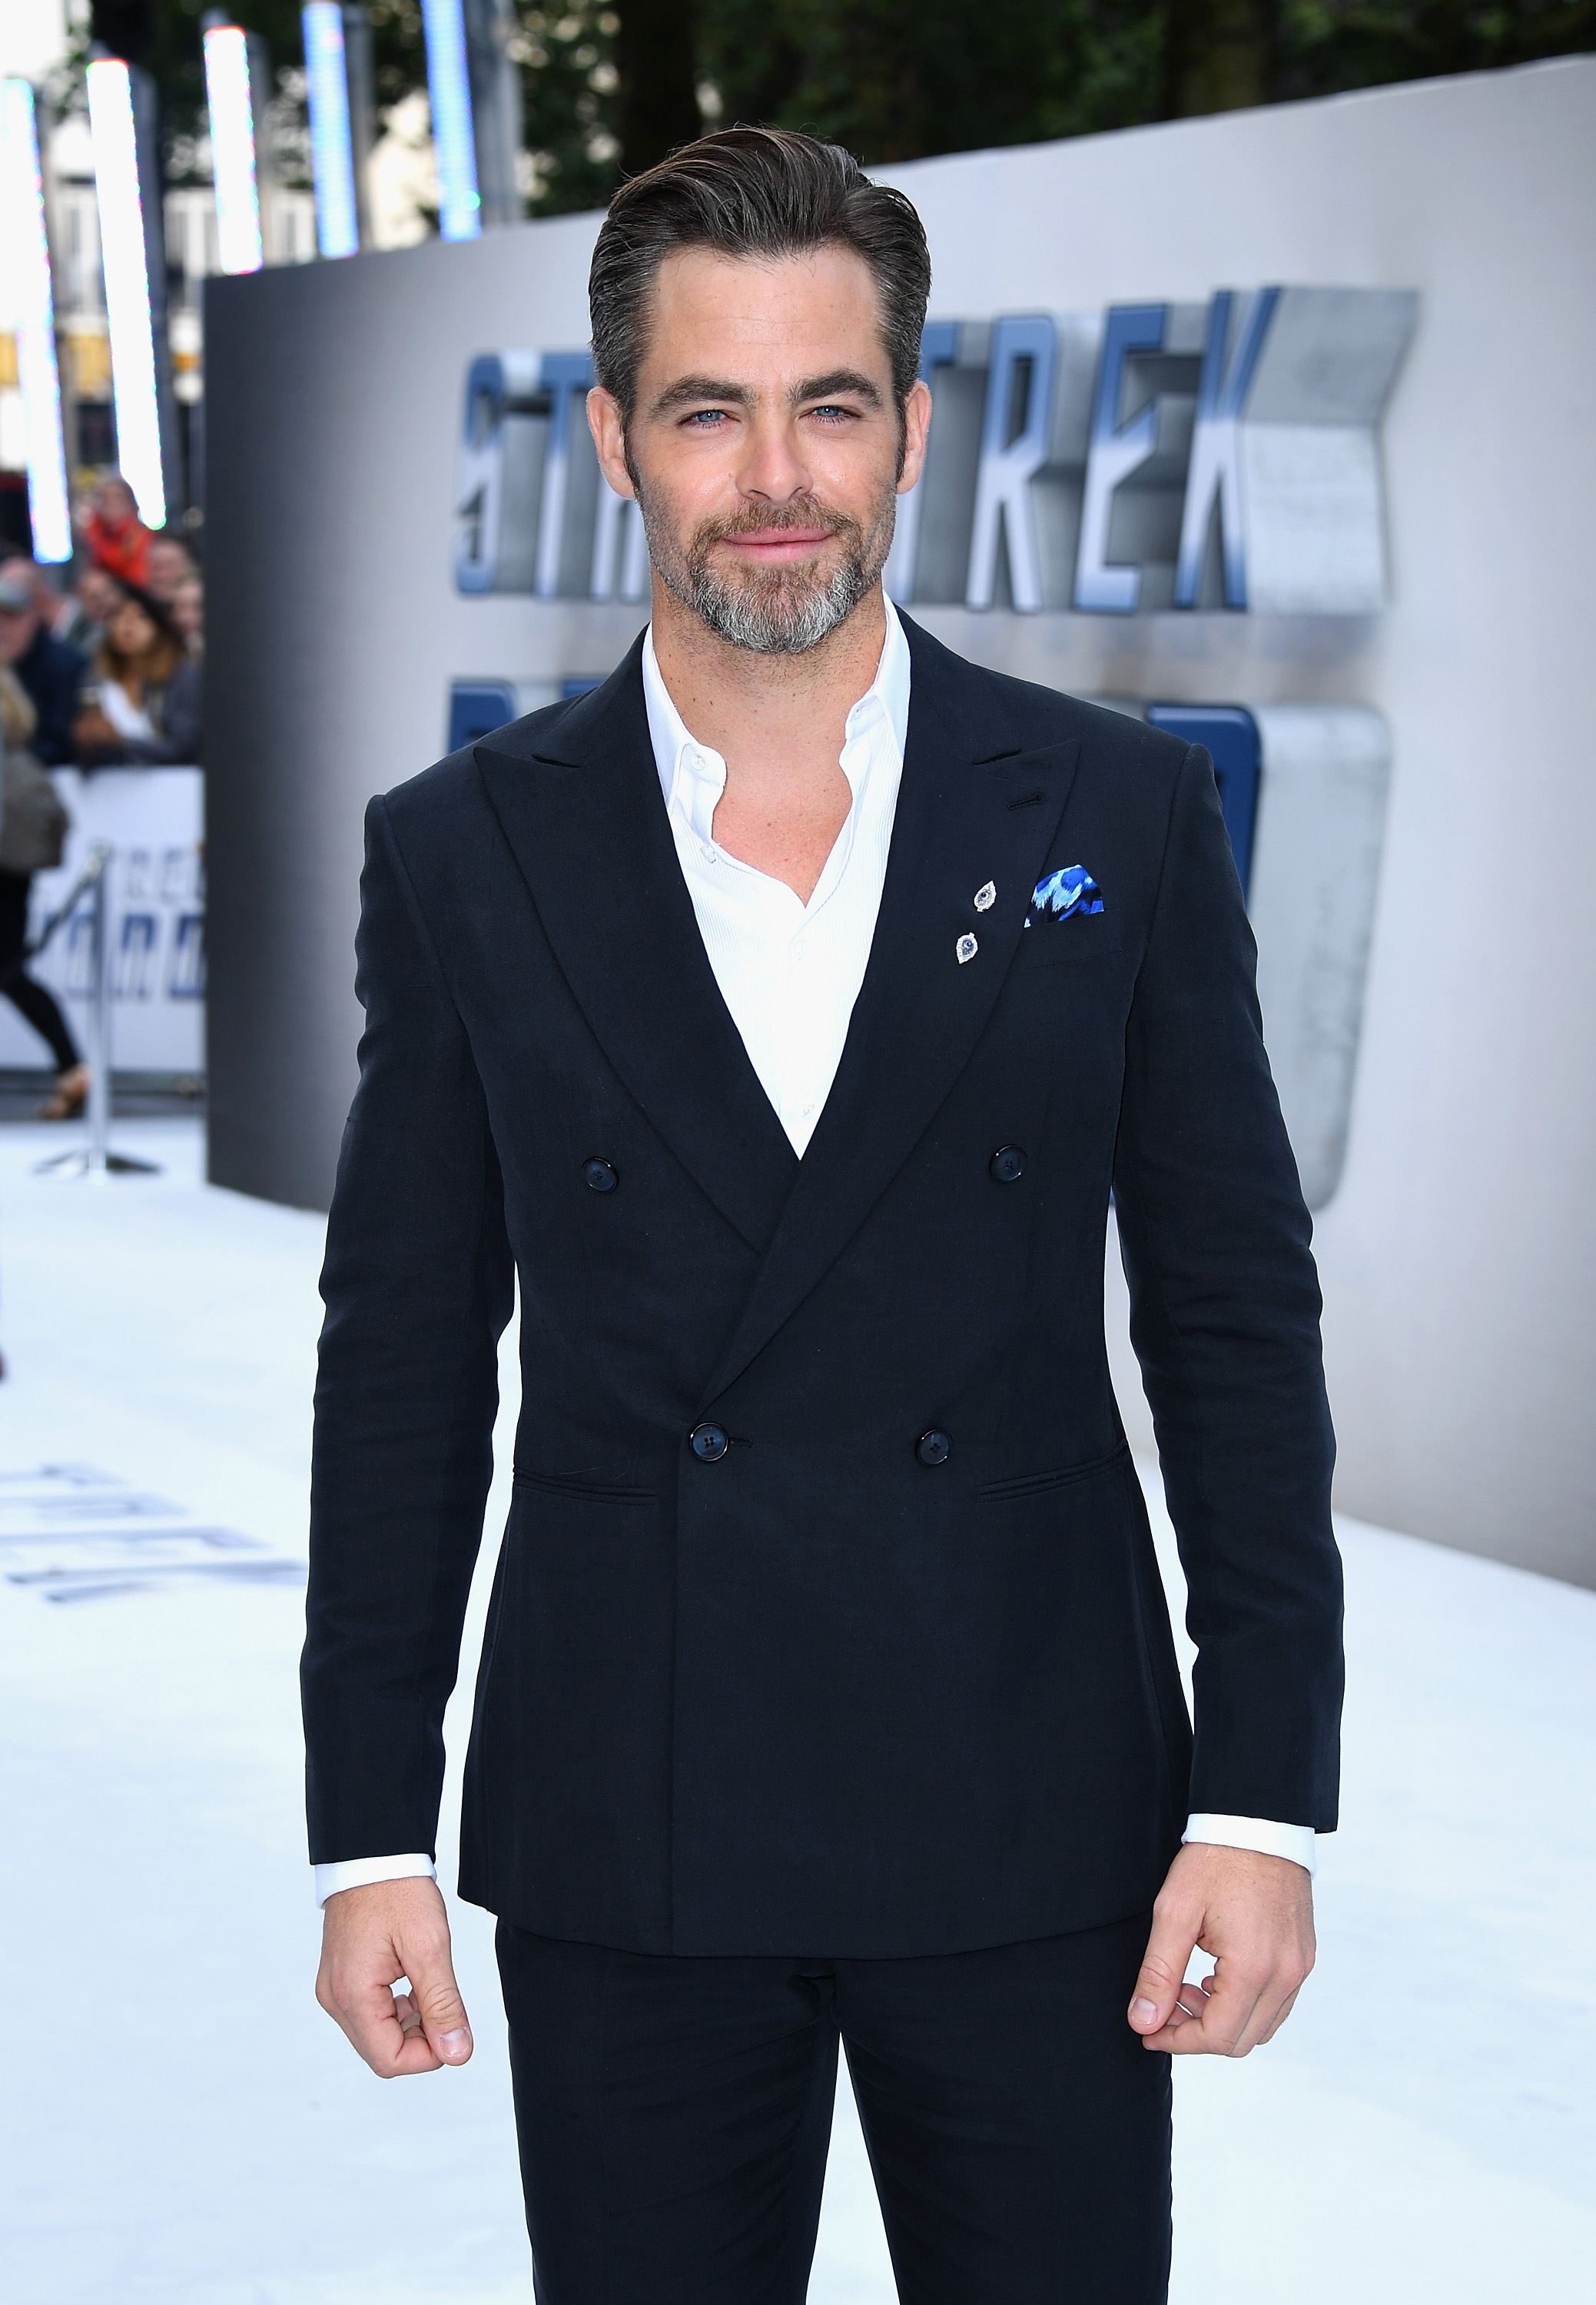 Chris-Pine-attends-the-UK-Premiere-of-Paramount-Pictures-Star-Trek-Beyond-at-the-Empire-Leicester-Square-on-July-12-2016-in-London